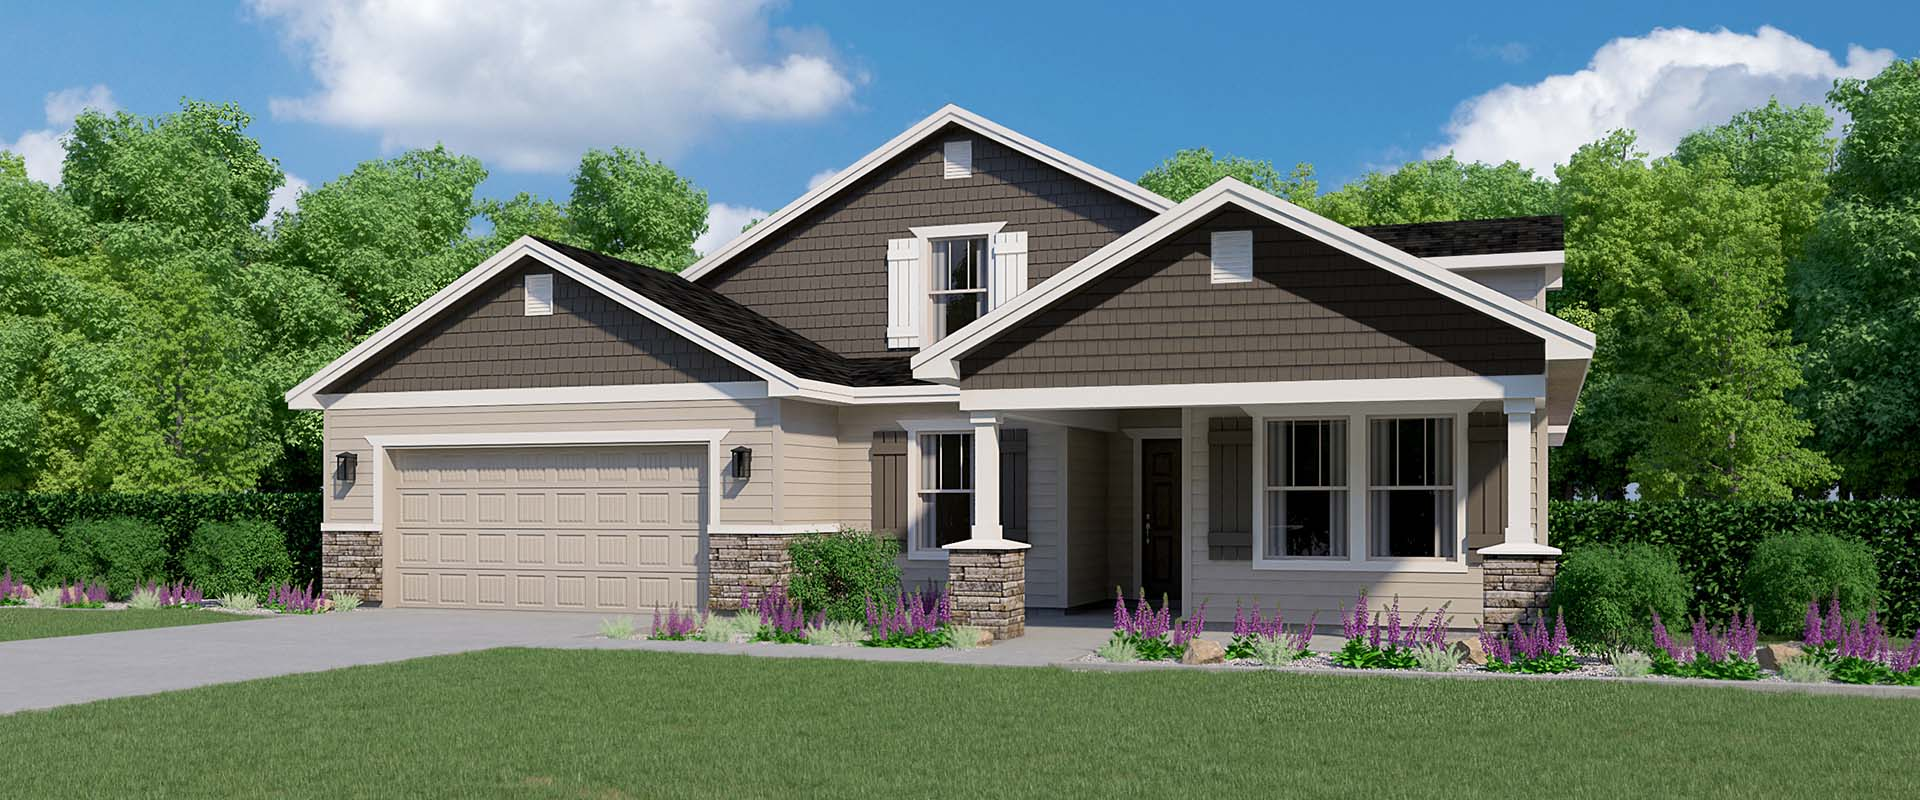 new-homes-boise-idaho-hubble-homes_0022_Opal Bonus Craftsman pack 52.jpg